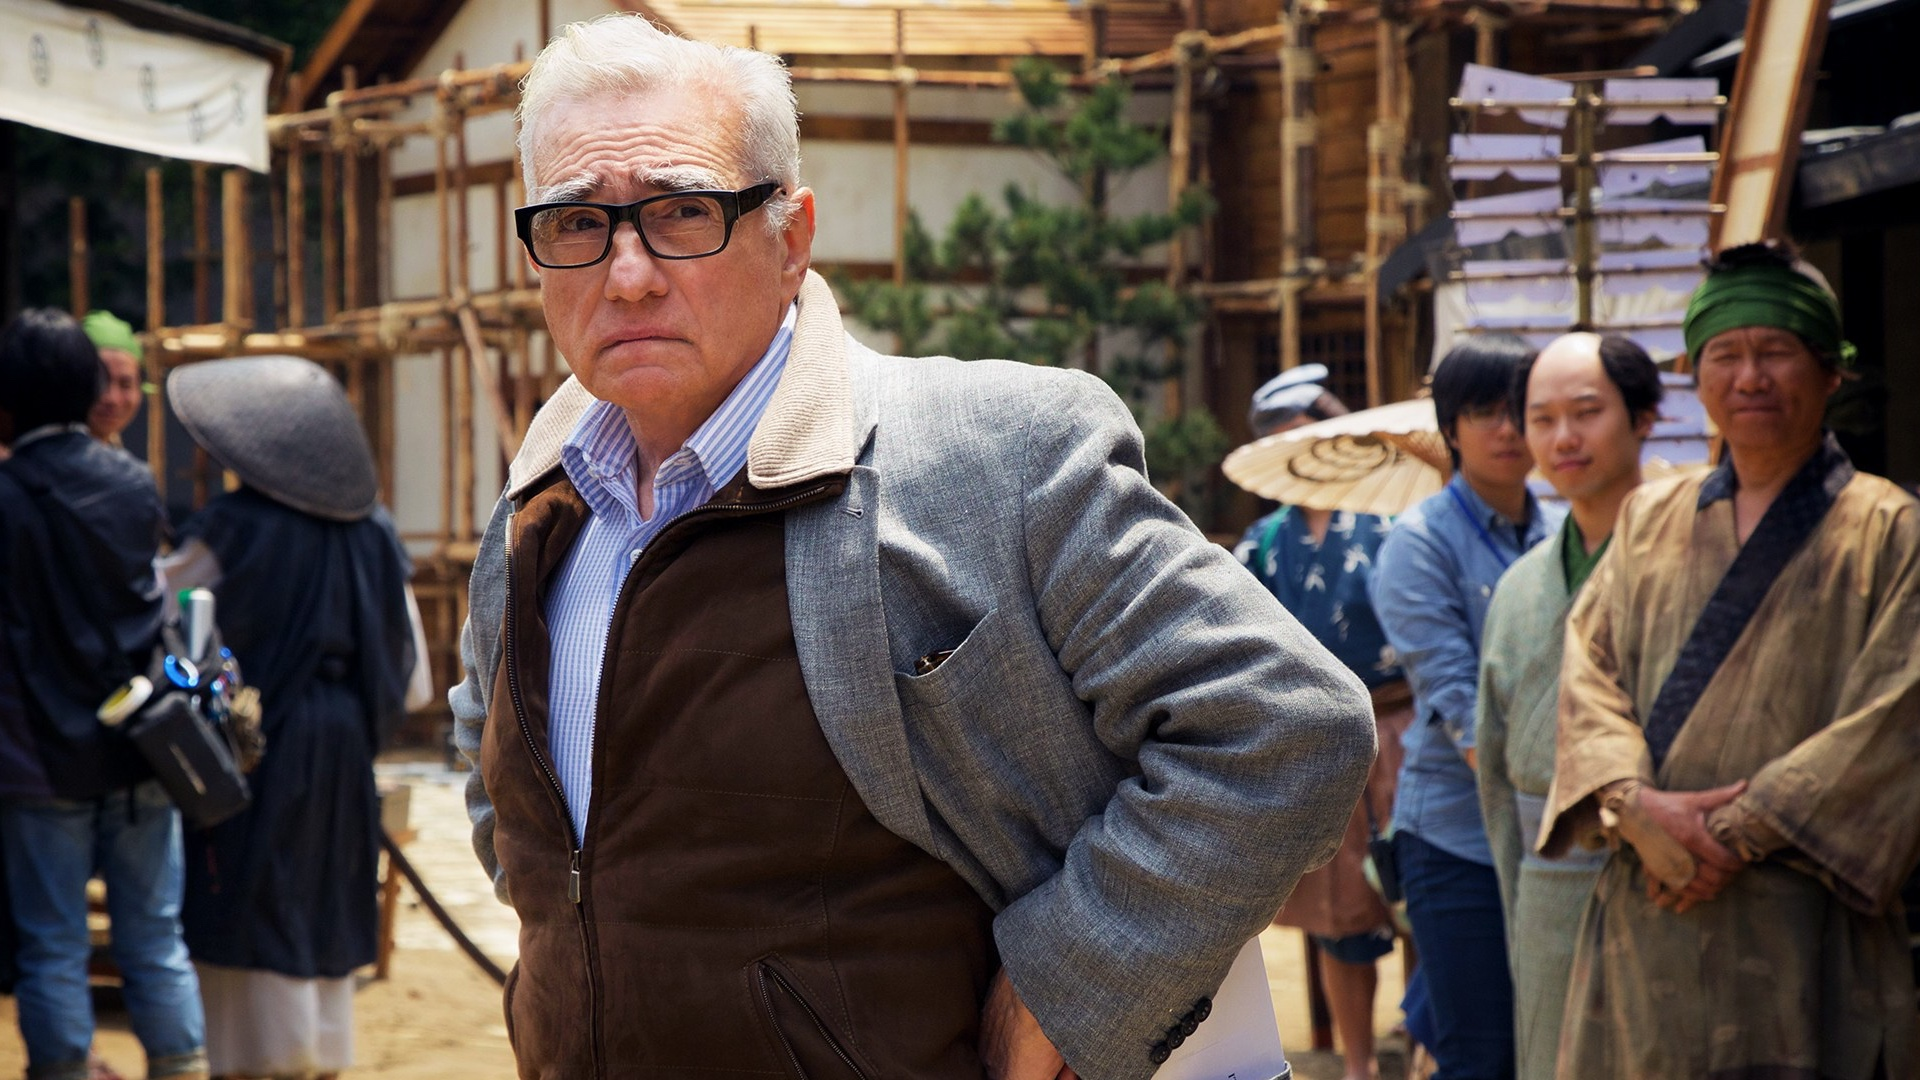 martin-scorsese-on-getting-the-youthification-cgi-work-in-the-irishman-to-look-right-social.jpg